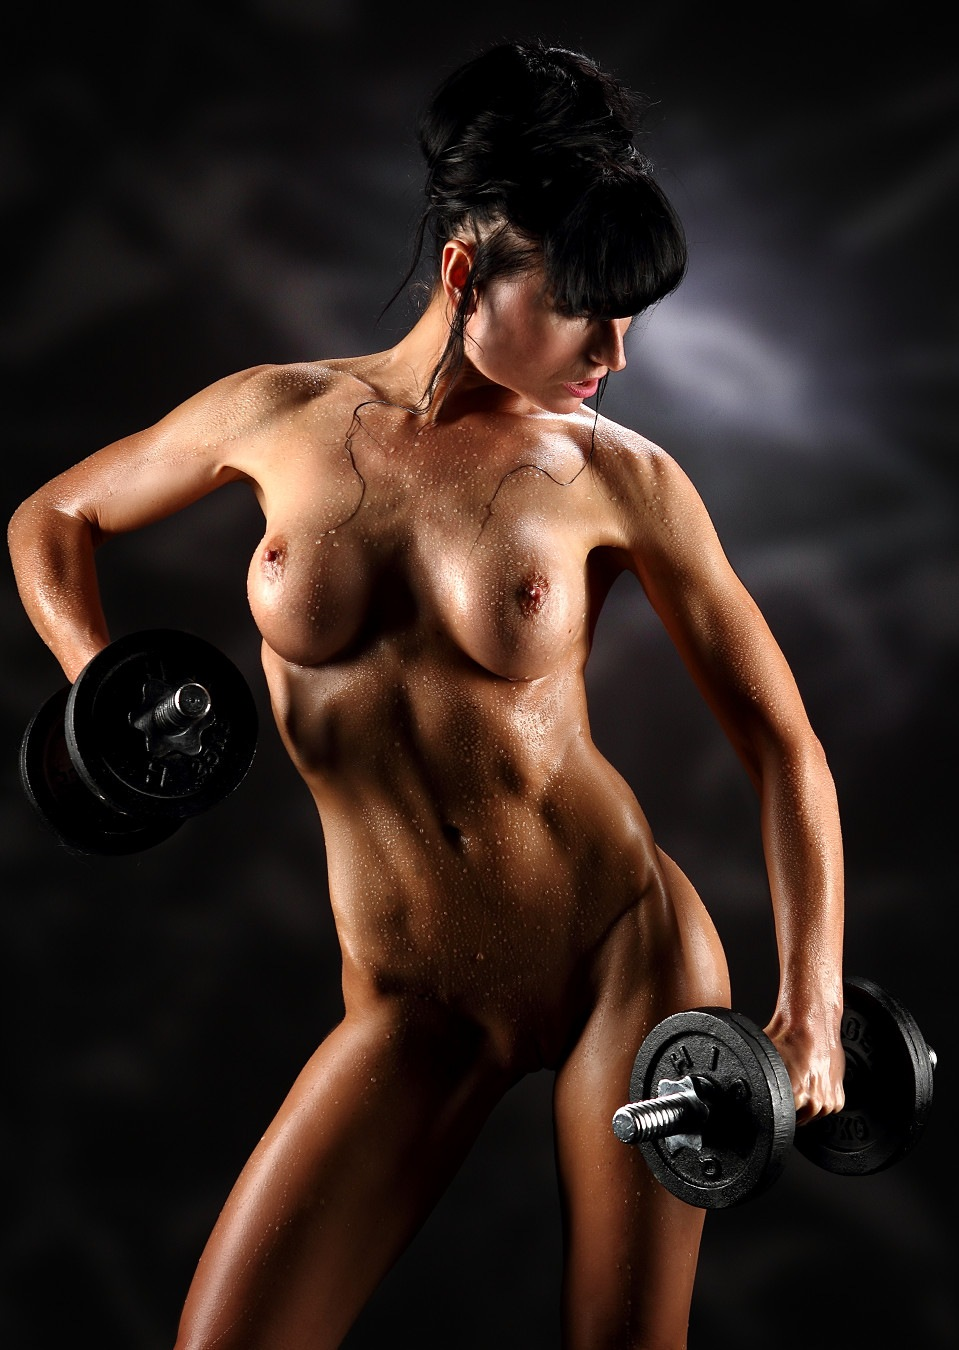 Nude girl weightlifitng  by GuWu